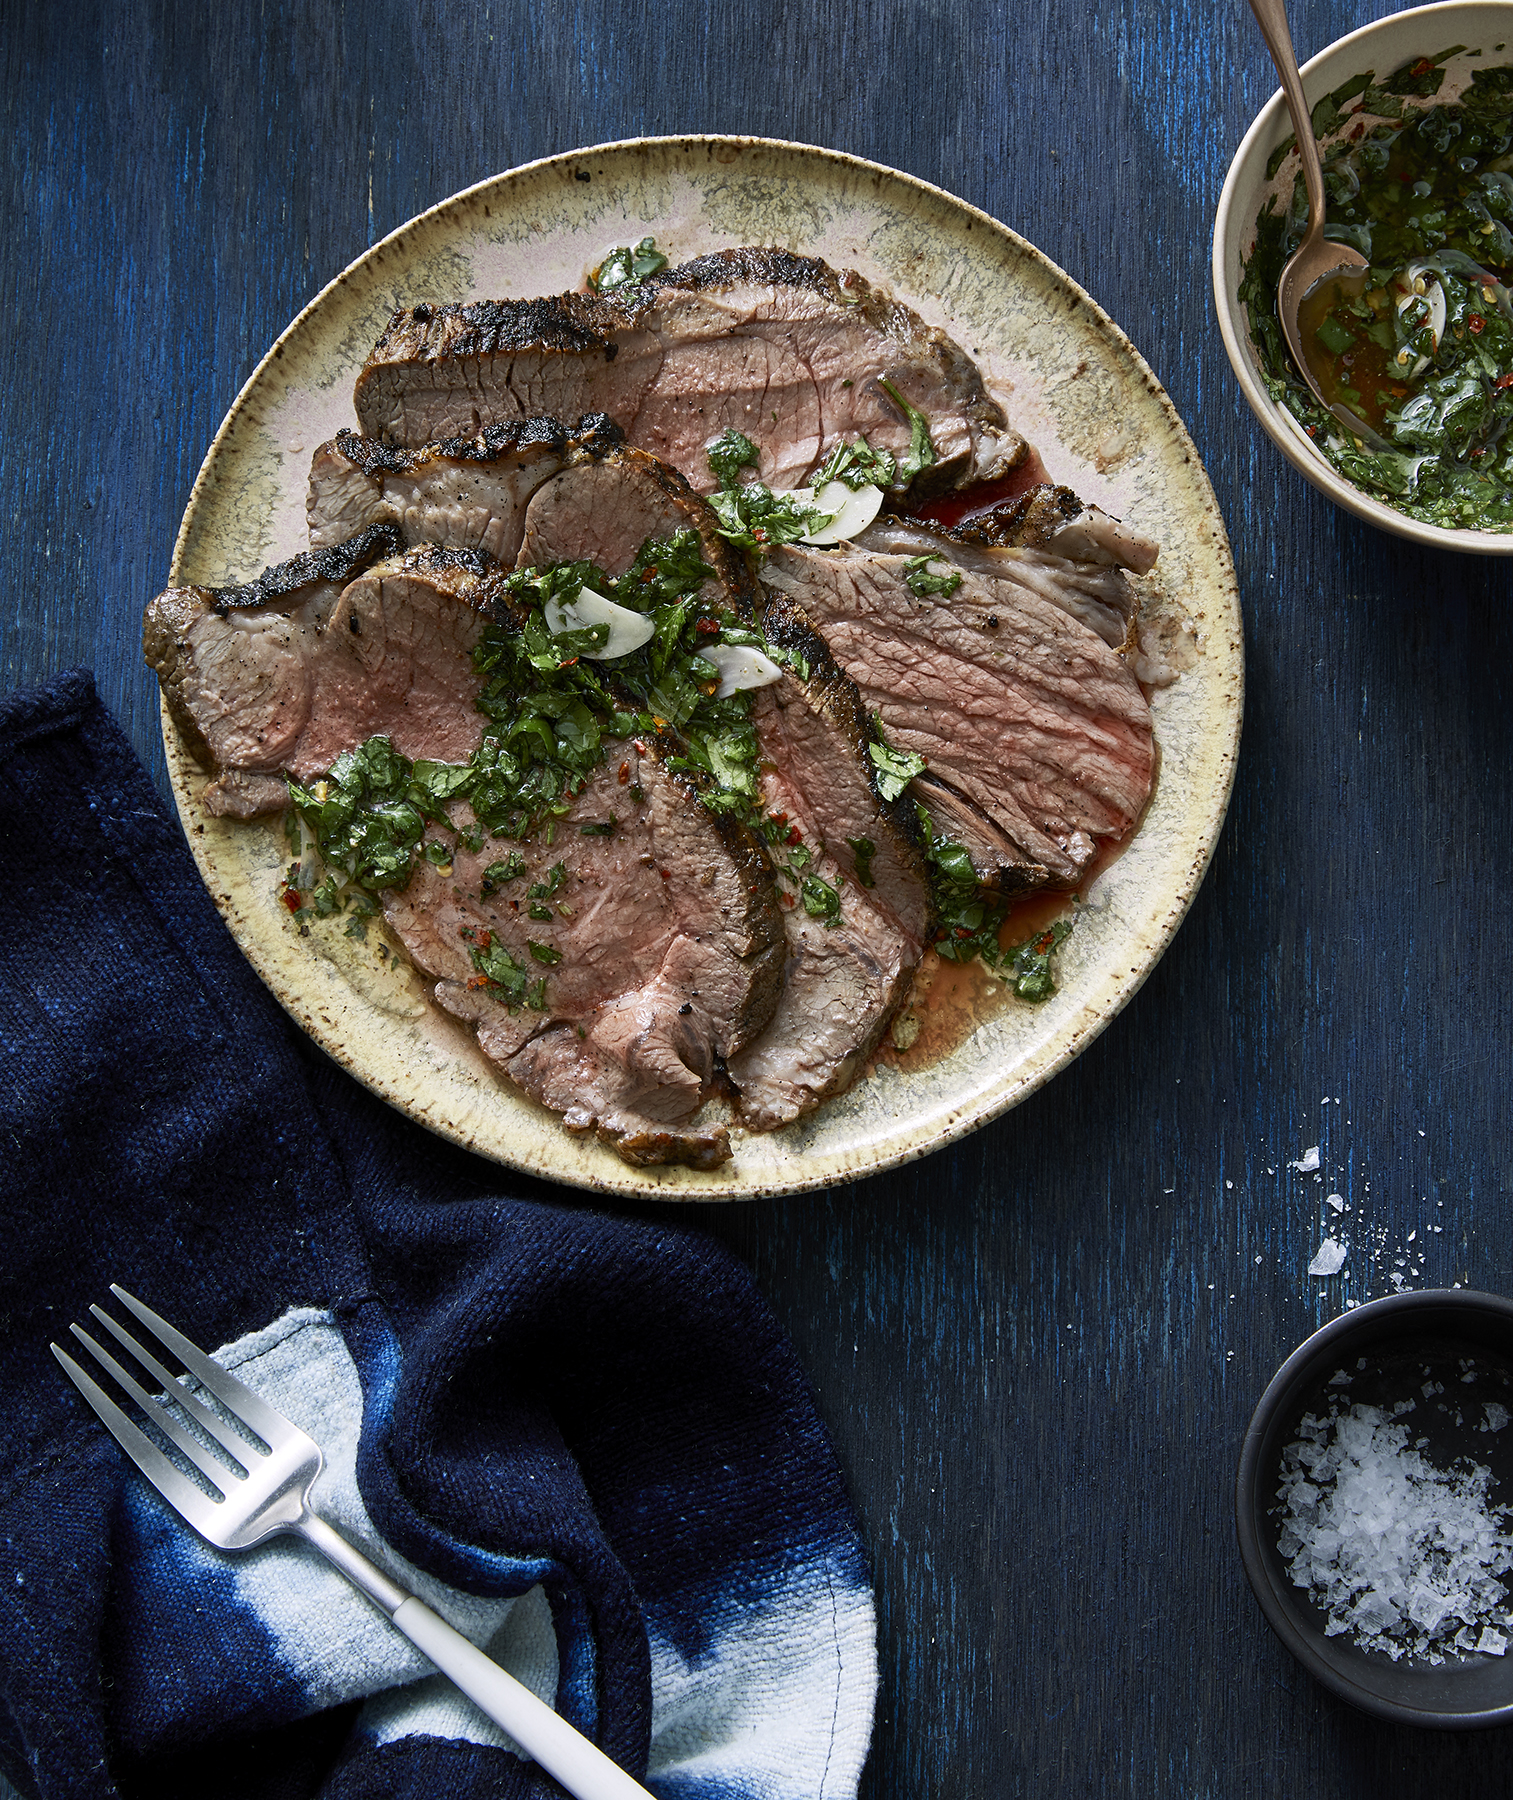 Spice-Rubbed Lamb Steak